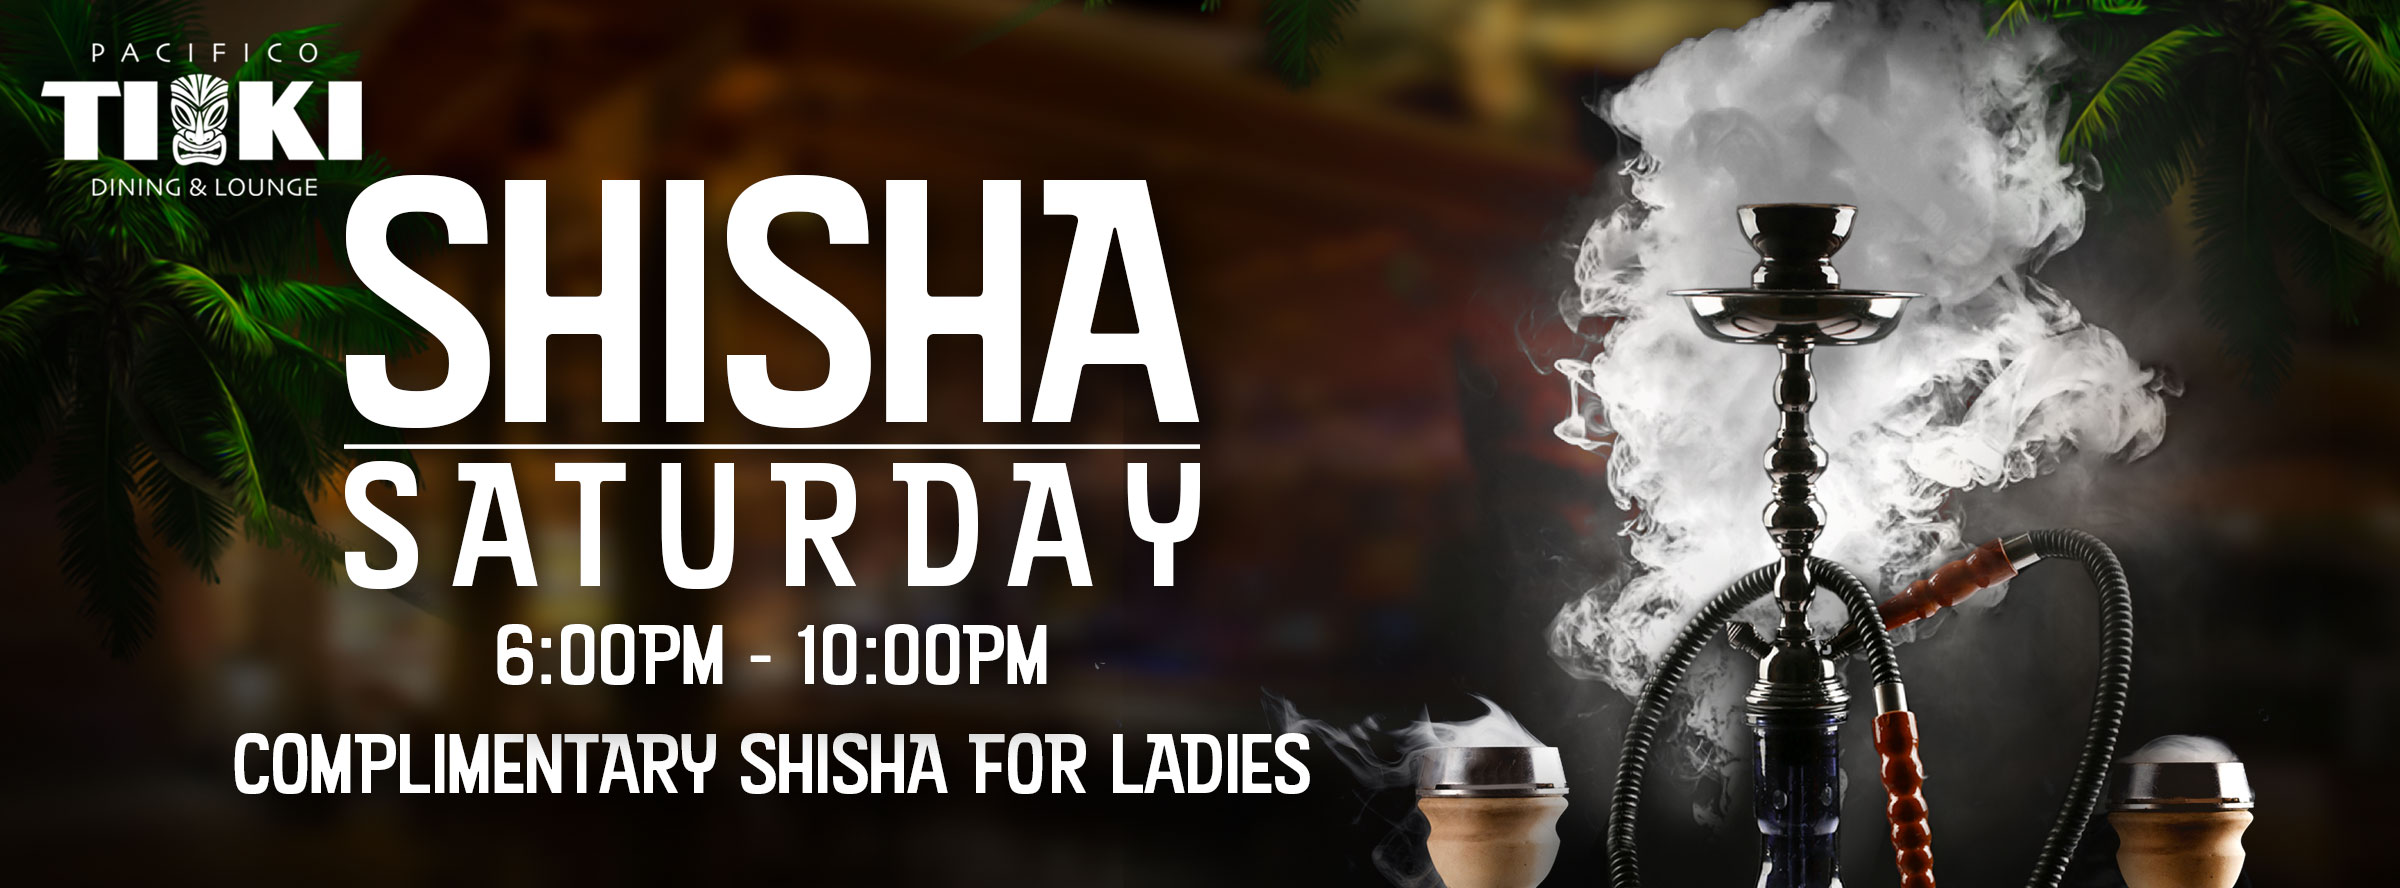 Tiki Shisha Saturday